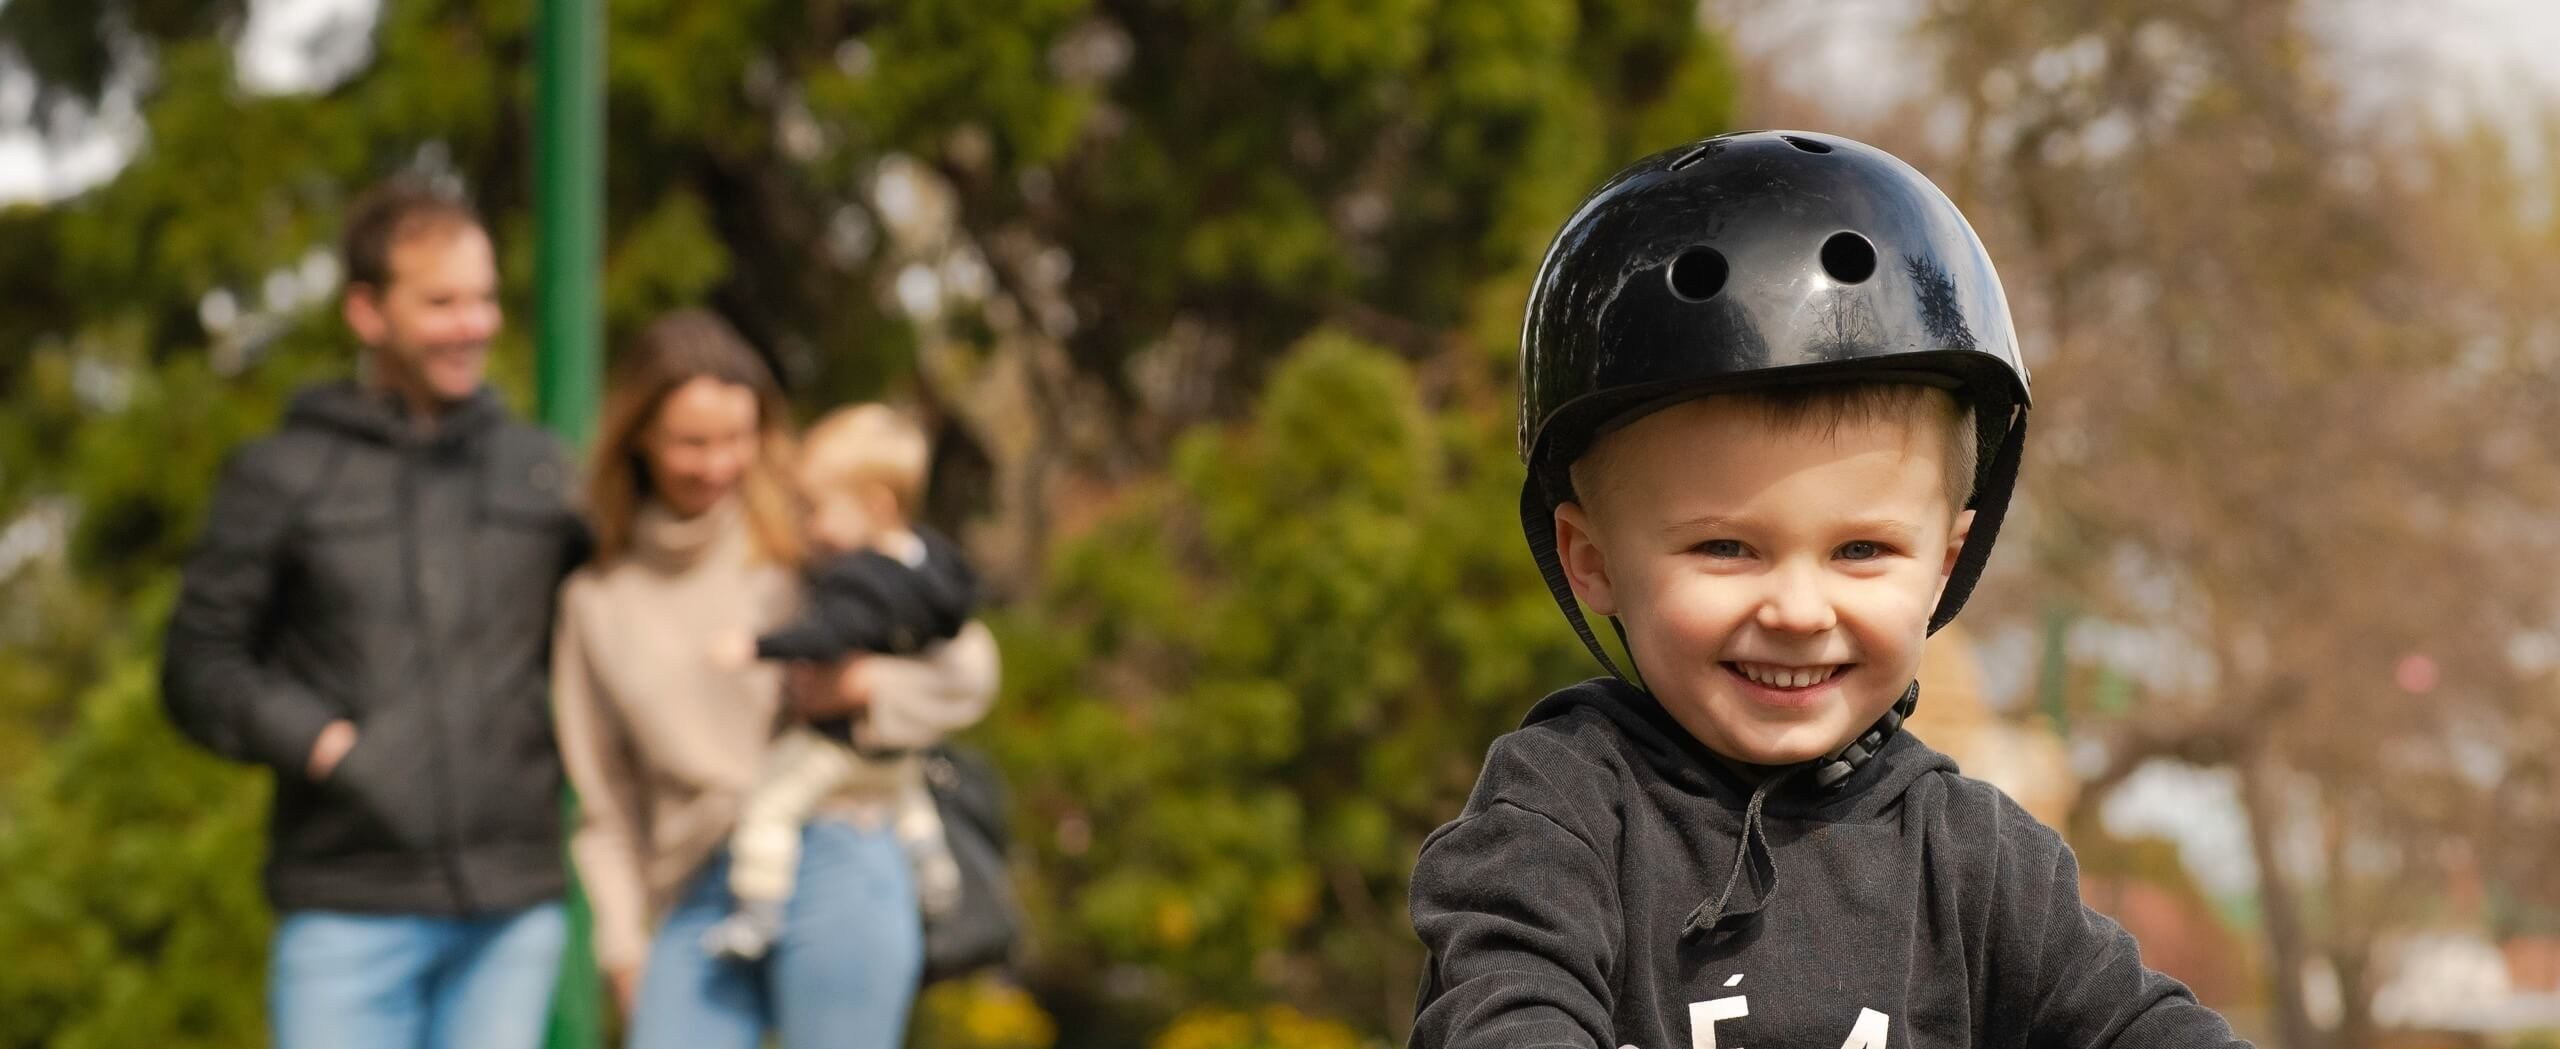 smiling toddler wearing a helmet as the family stand in the background